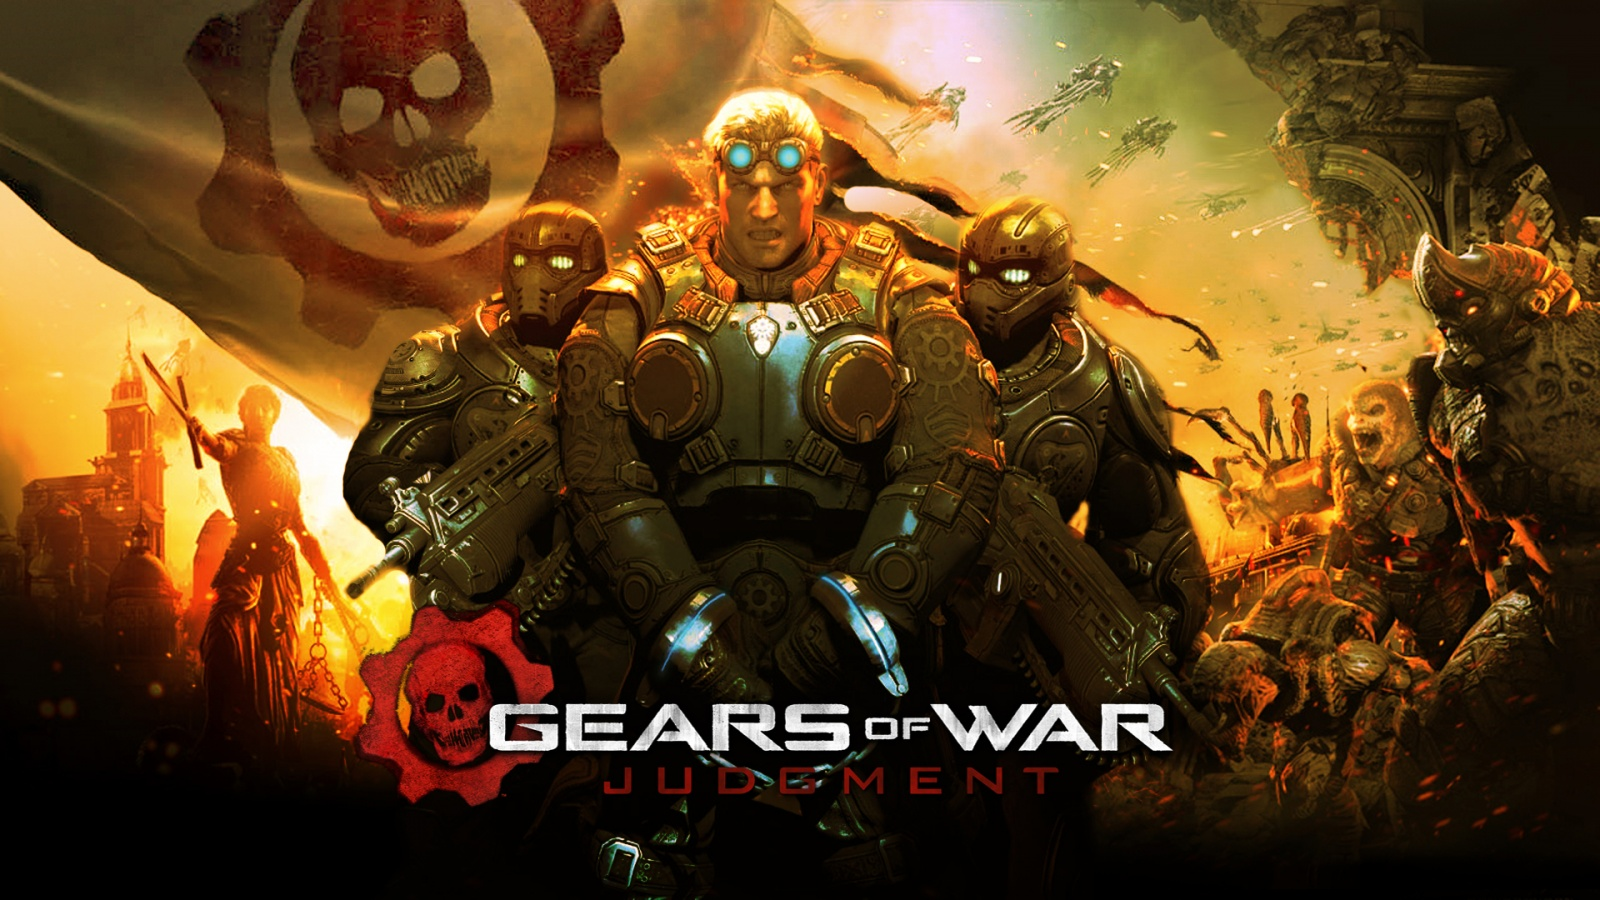 2013 Gears of War Judgment Game 1600x900 1600x900